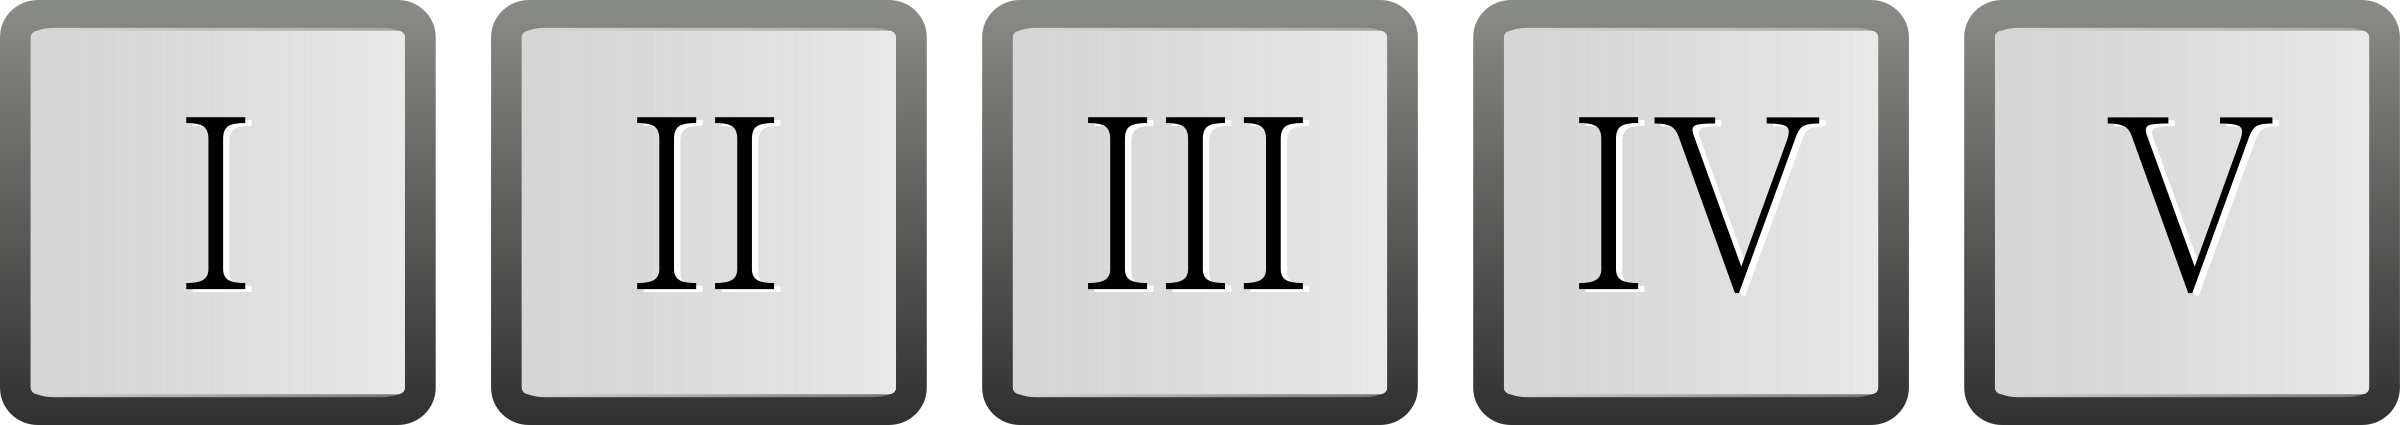 Roman numerals transparent png. Number 1 clipart numeral